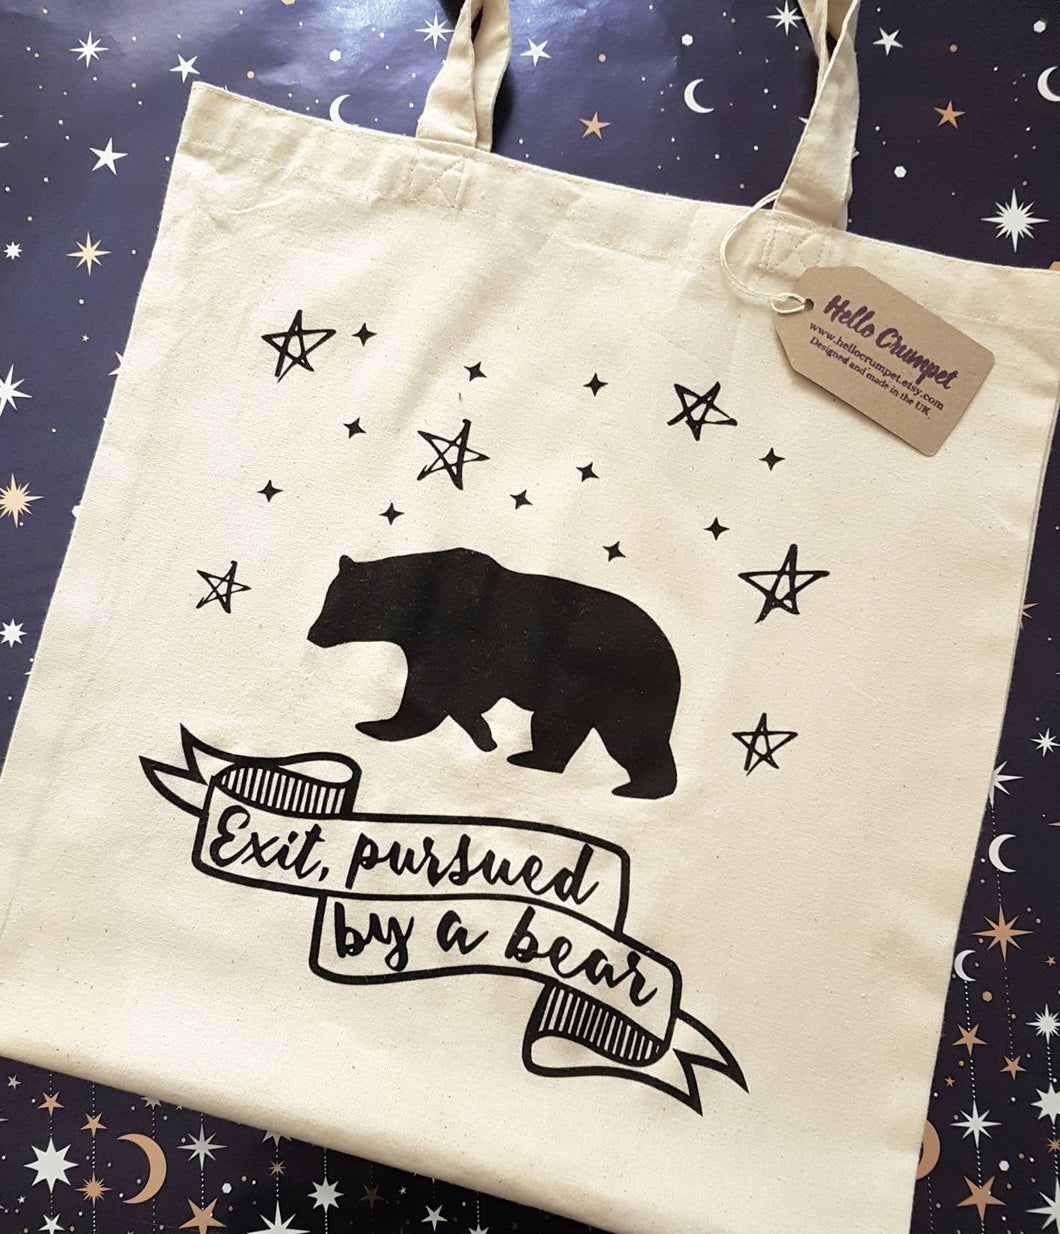 Shakespeare A Winter's Tale Exit Pursued By A Bear cotton tote book bag